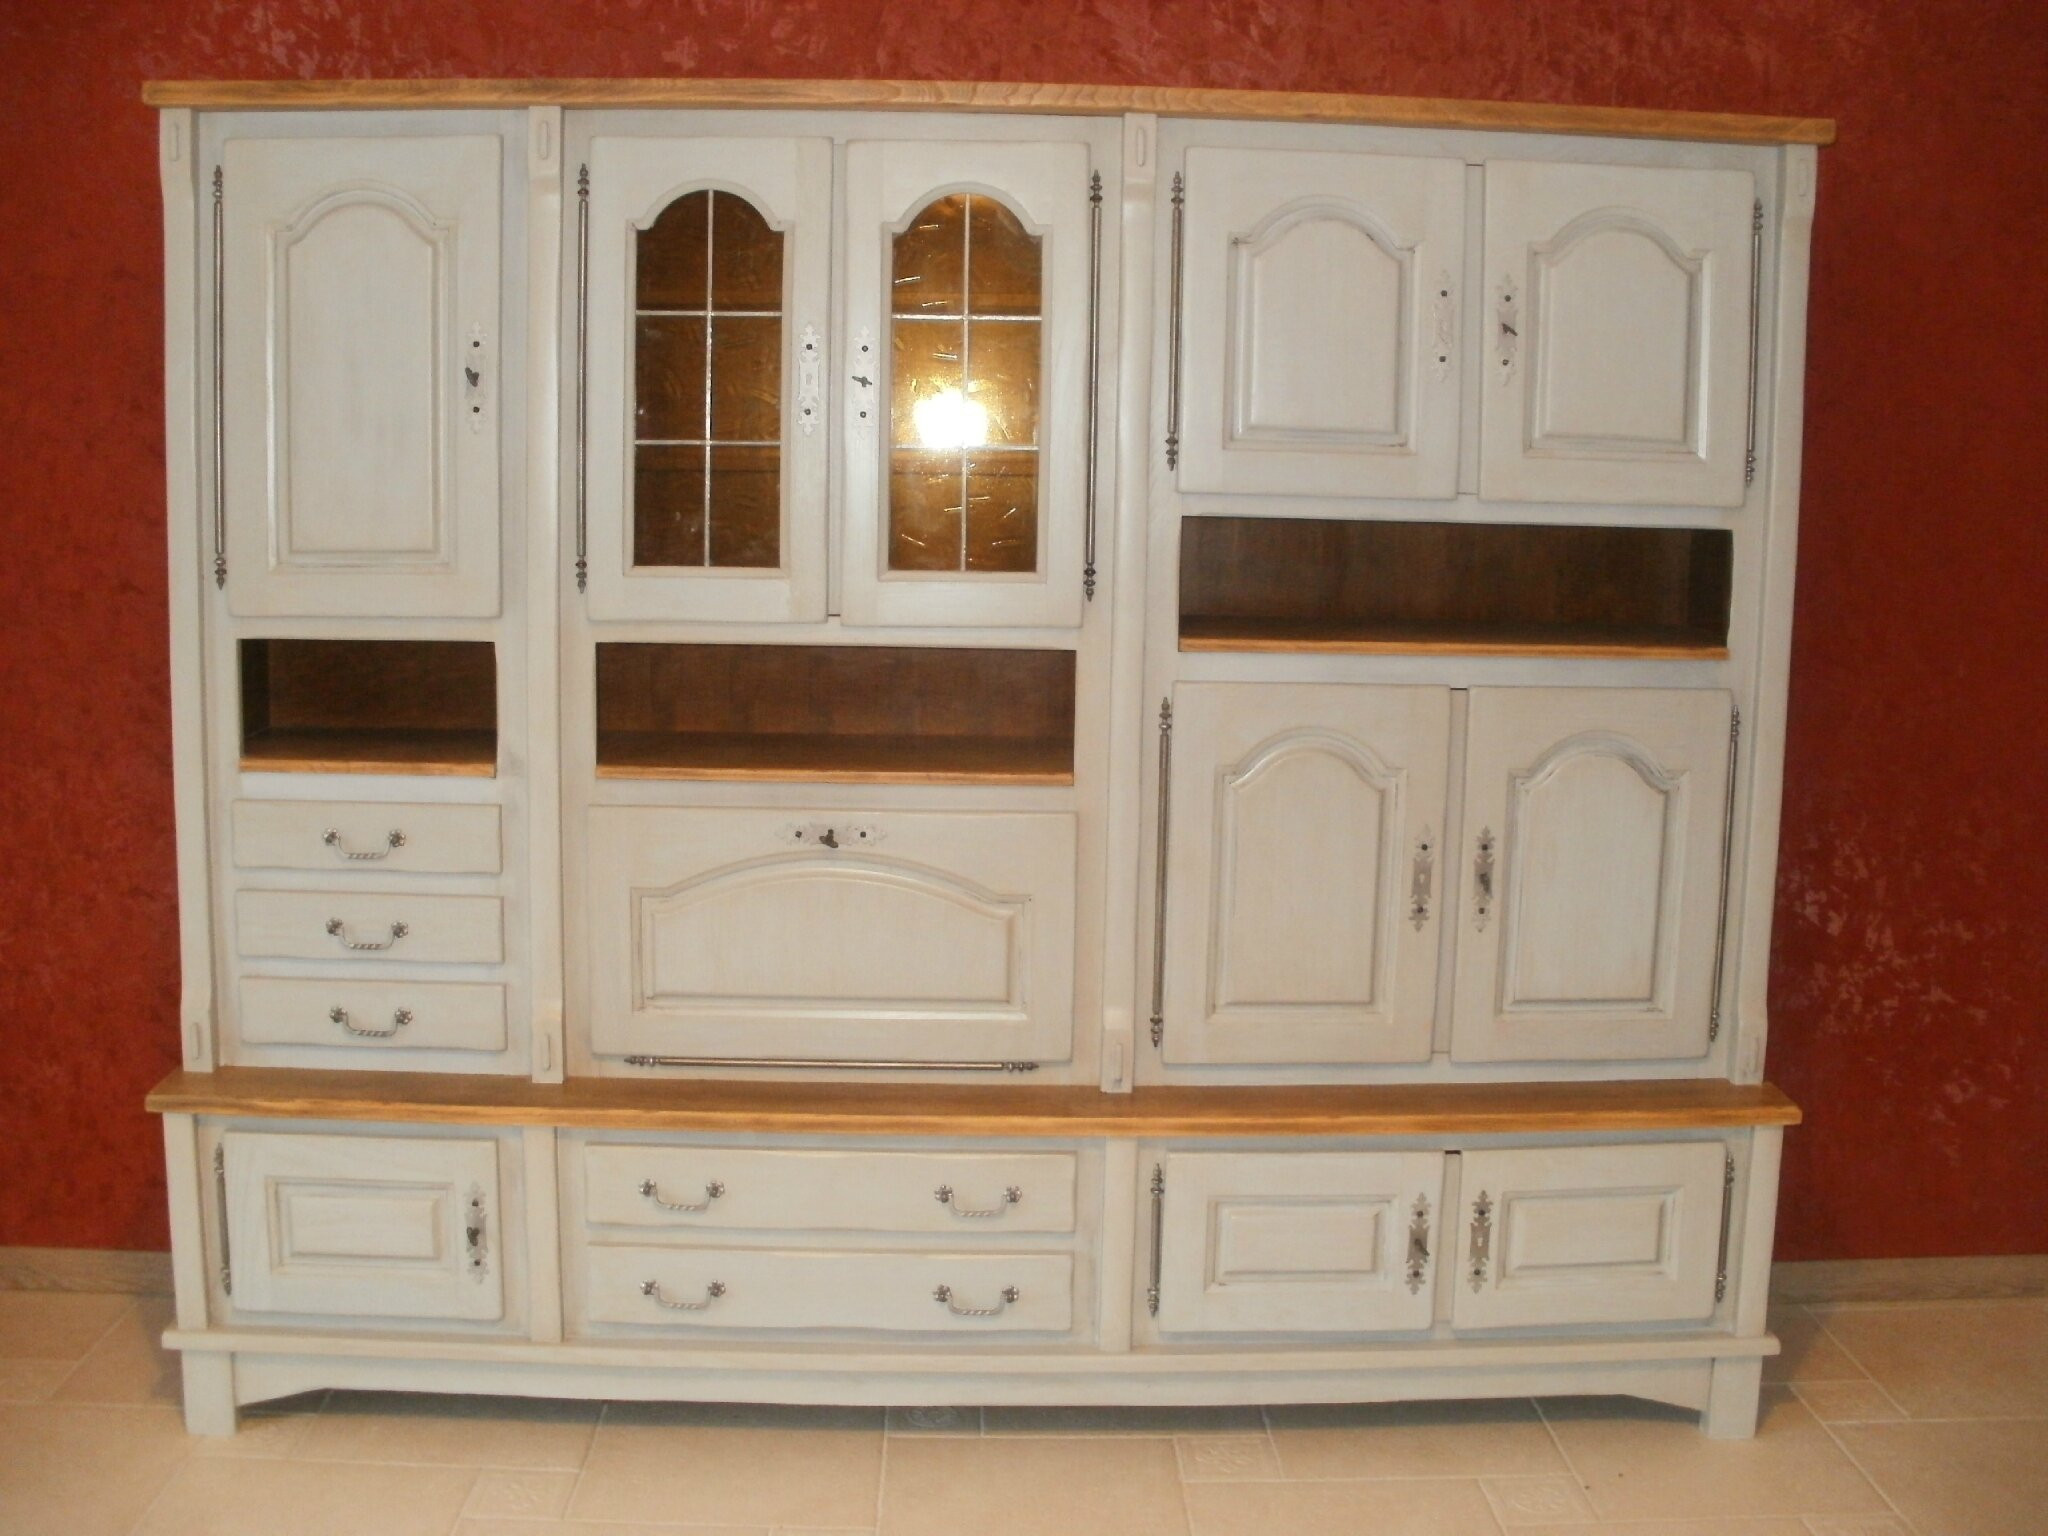 relooker armoire cuisine top with relooker armoire cuisine best model cuisine equipee algerie. Black Bedroom Furniture Sets. Home Design Ideas